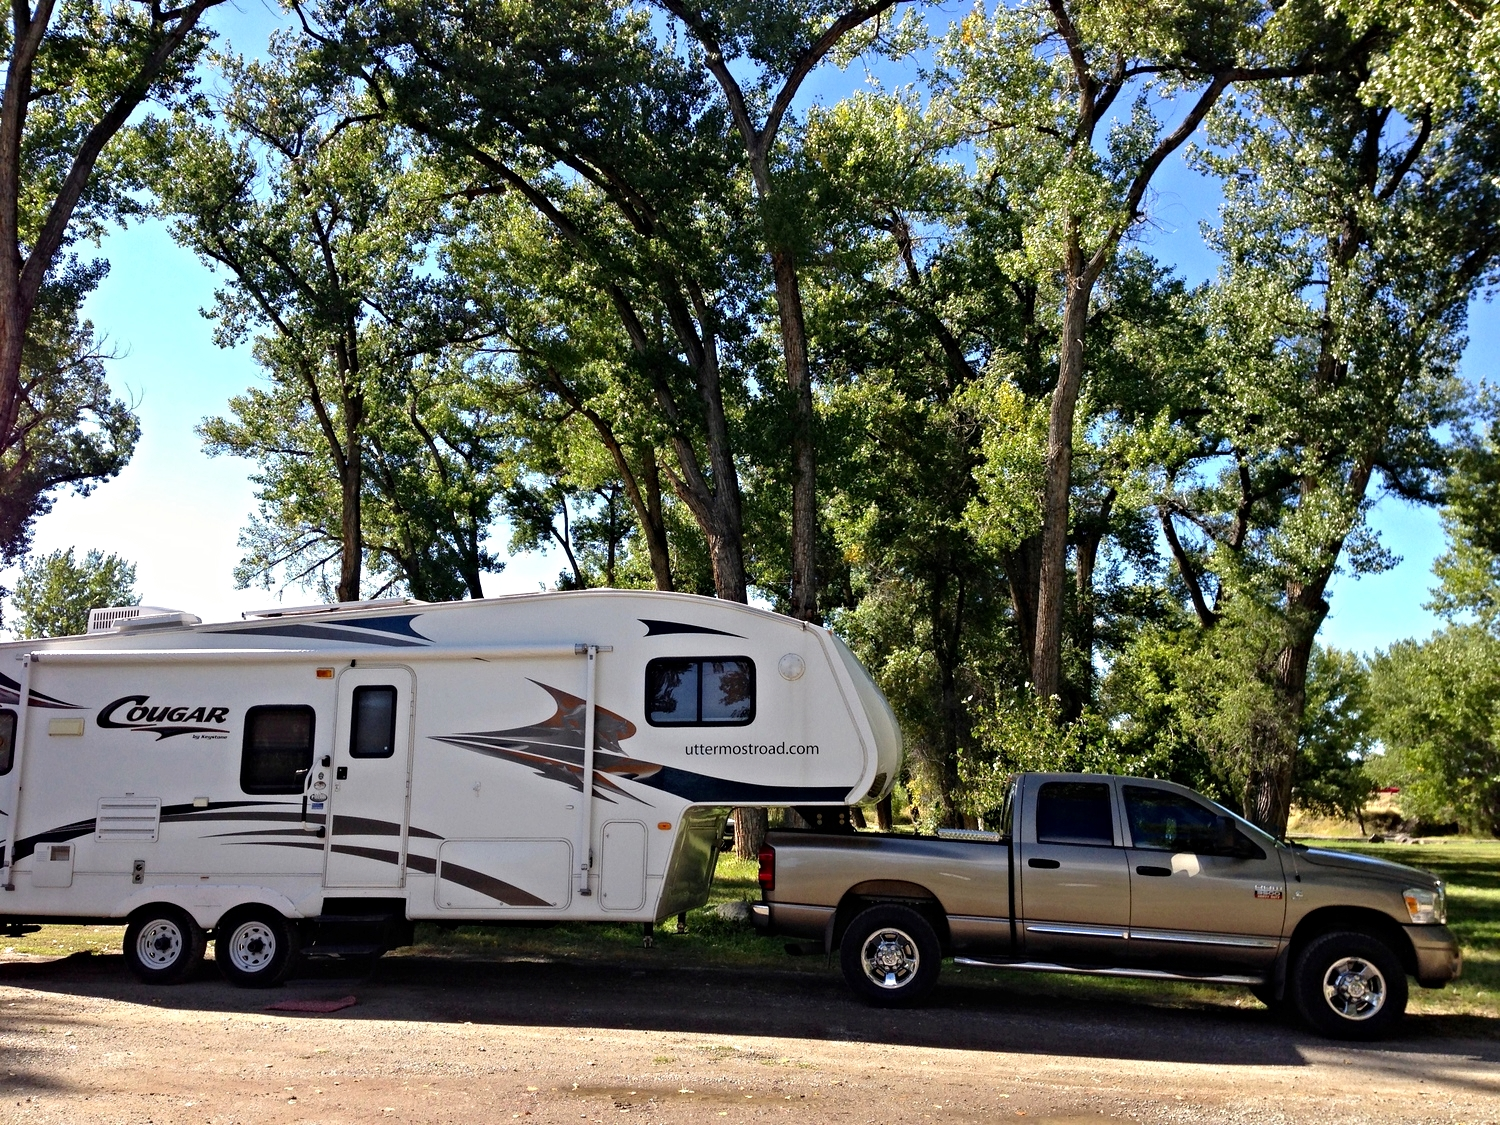 A free campsite at Itch-Kep-Pe Park in Columbus, Montana.